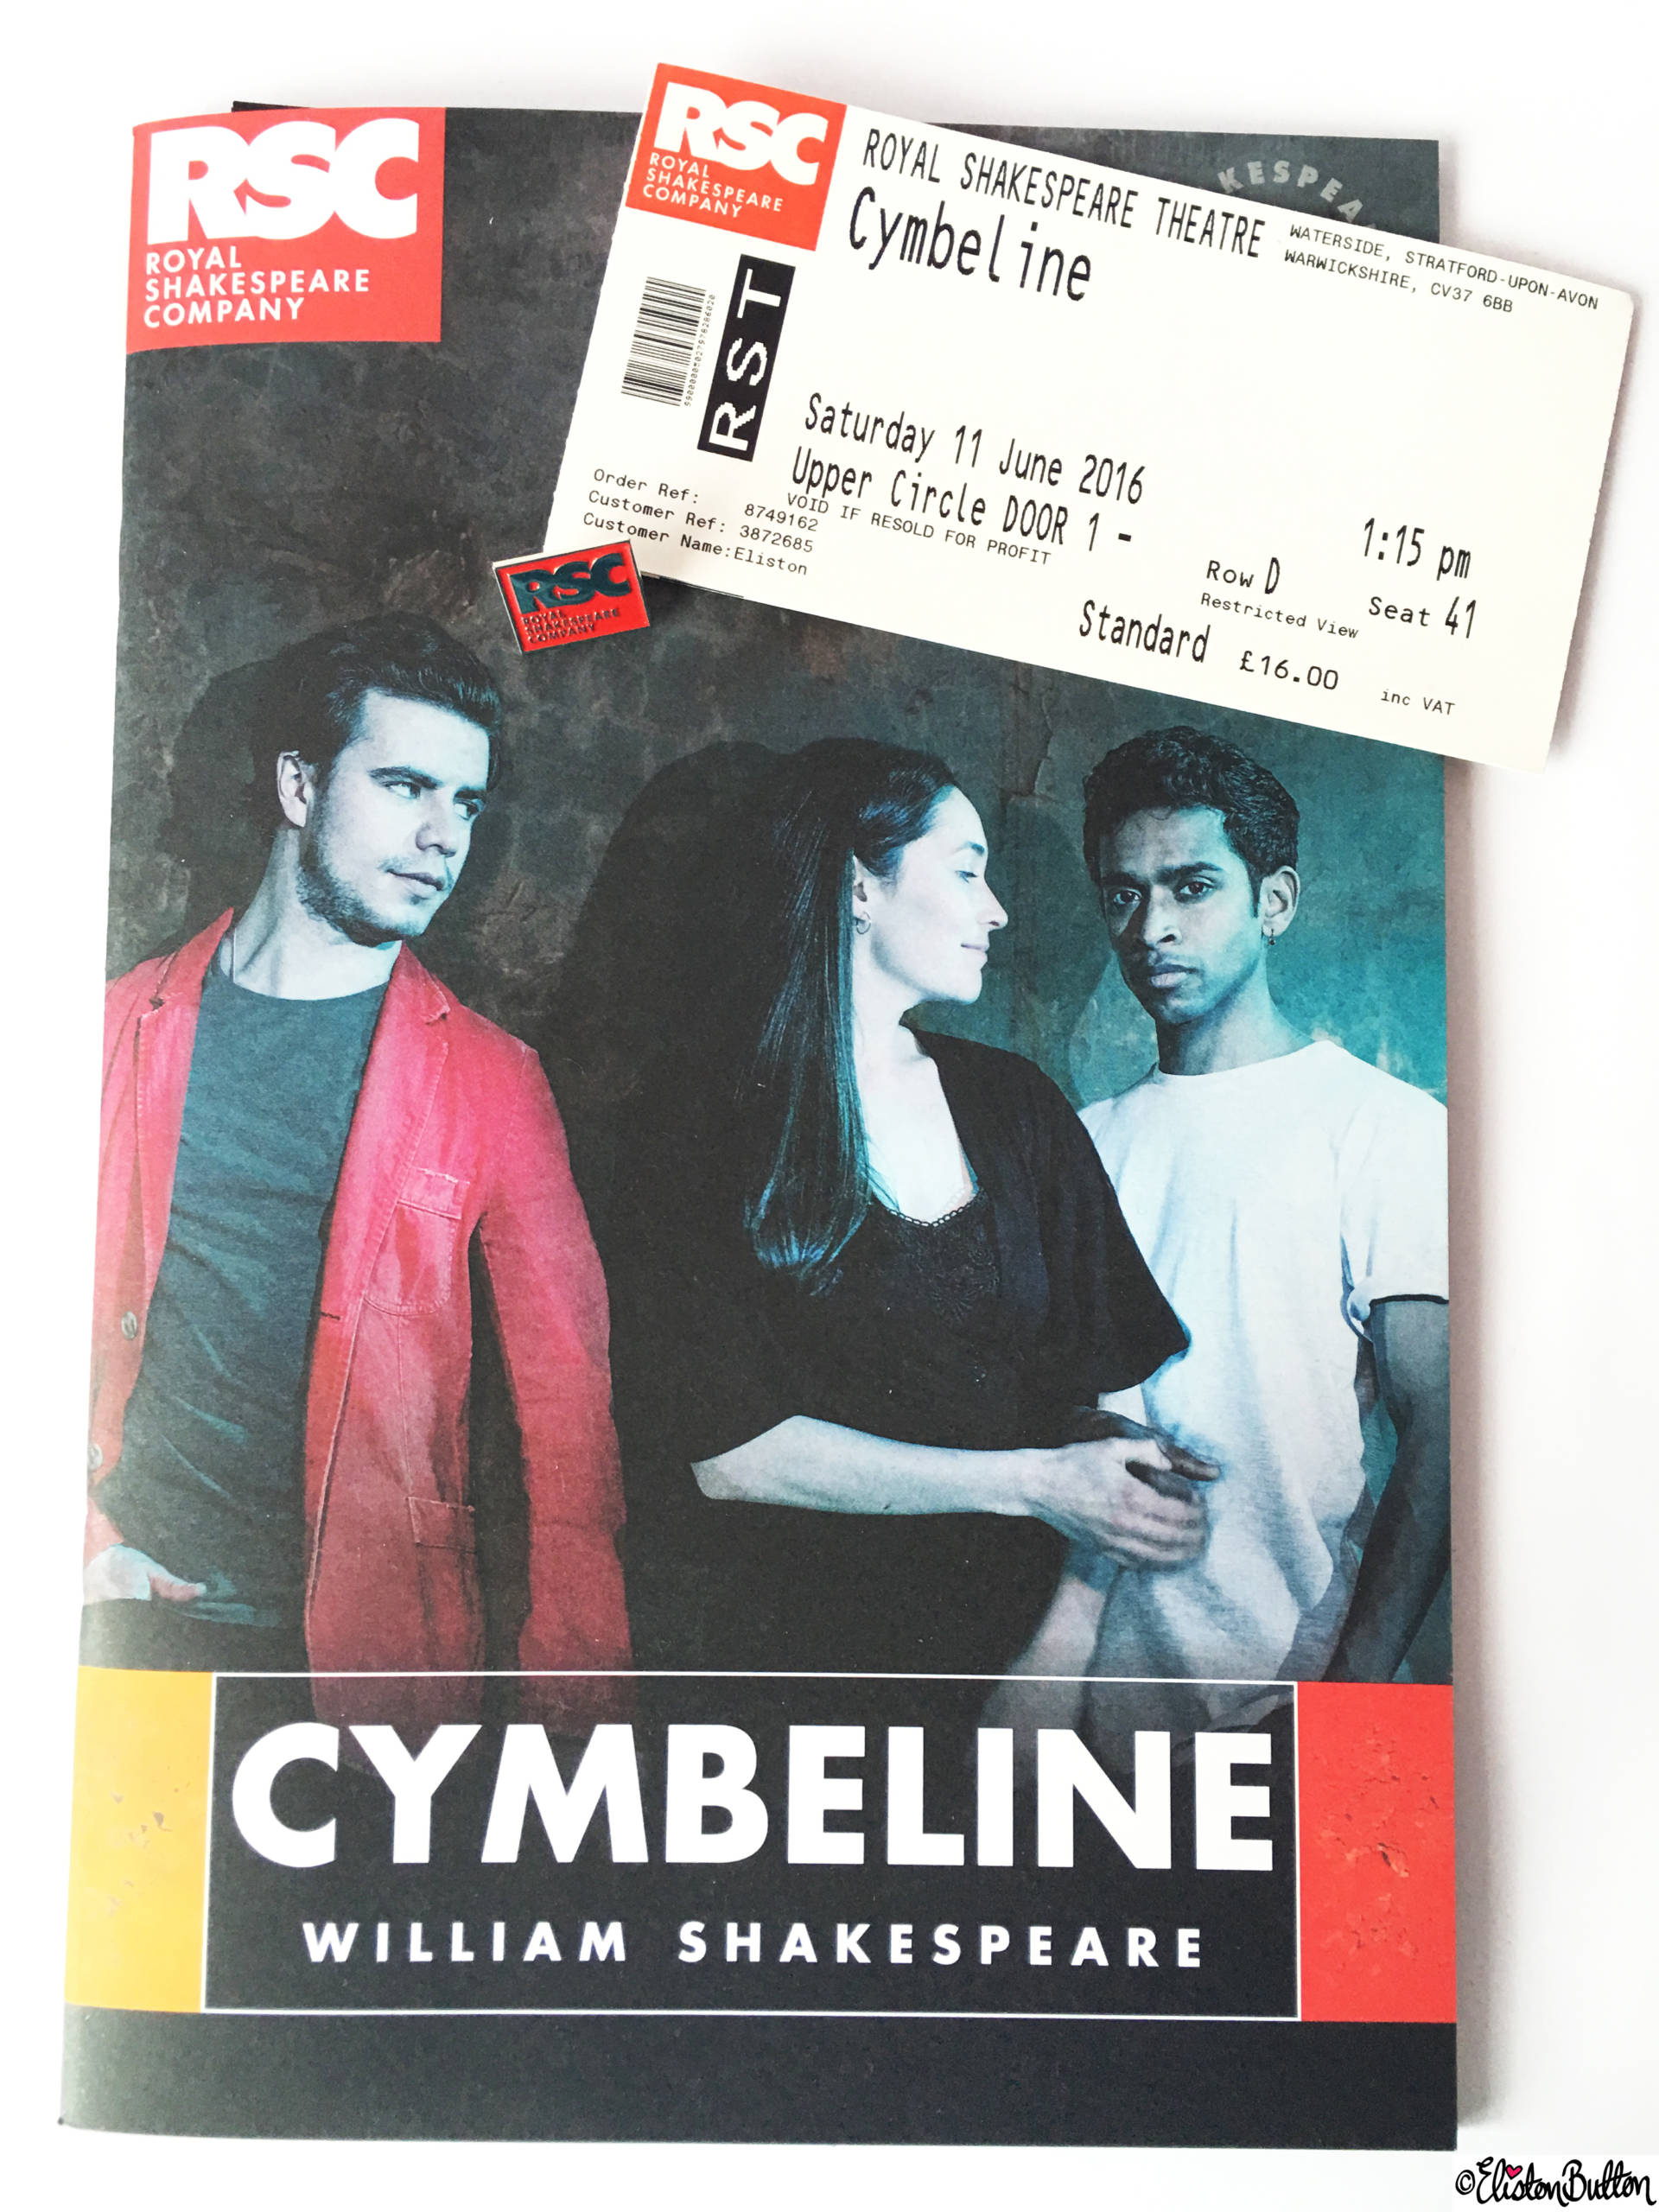 Cymbeline by William Shakespeare Program Playbill, Enamel Pin Bage and Theatre Ticket from the Royal Shakespeare Theatre, Stratford-upon-Avon - Birthday Adventures at www.elistonbutton.com - Eliston Button - That Crafty Kid – Art, Design, Craft & Adventure.